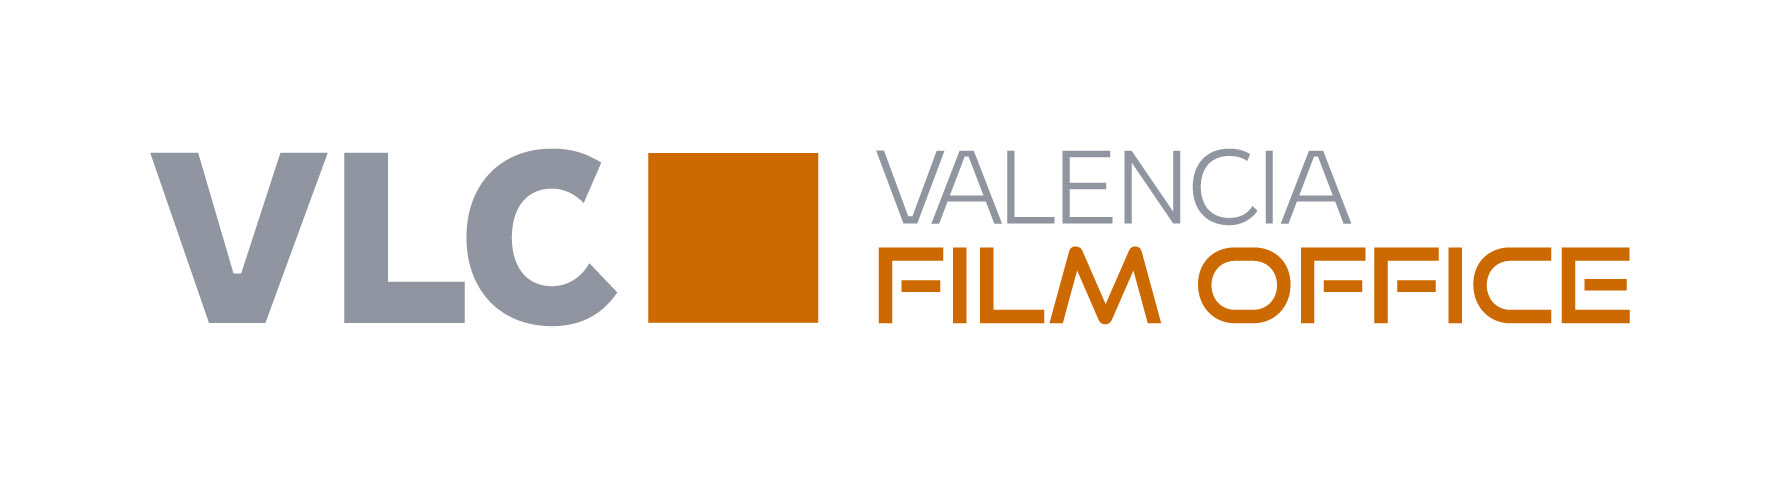 Valencia Film Office